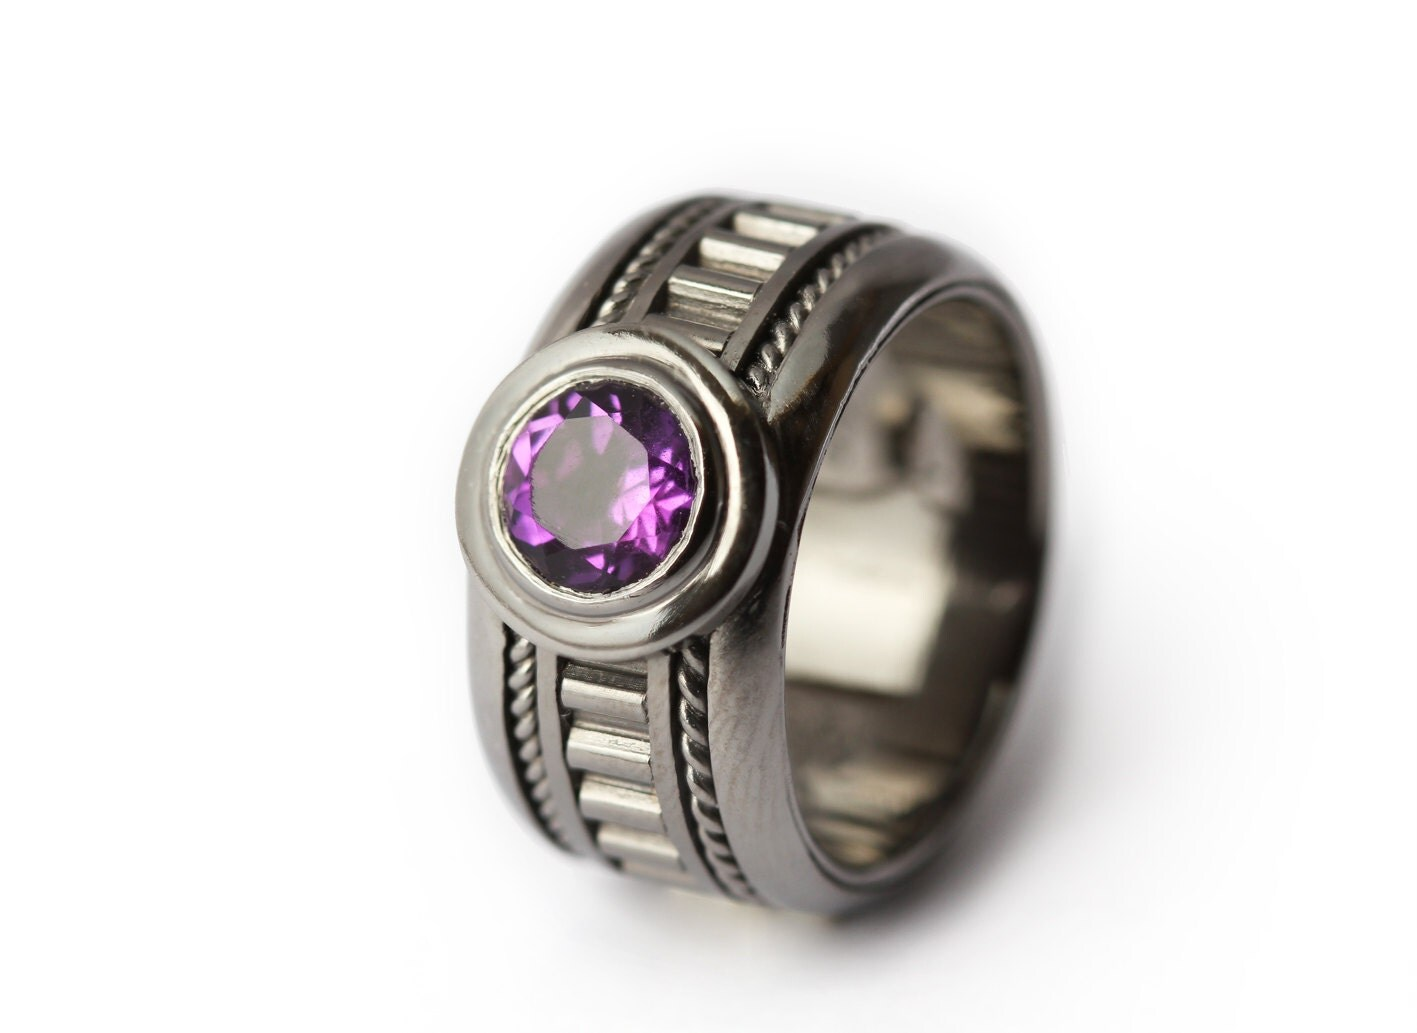 The Man Ring Amethyst personalized Men's Black Ring